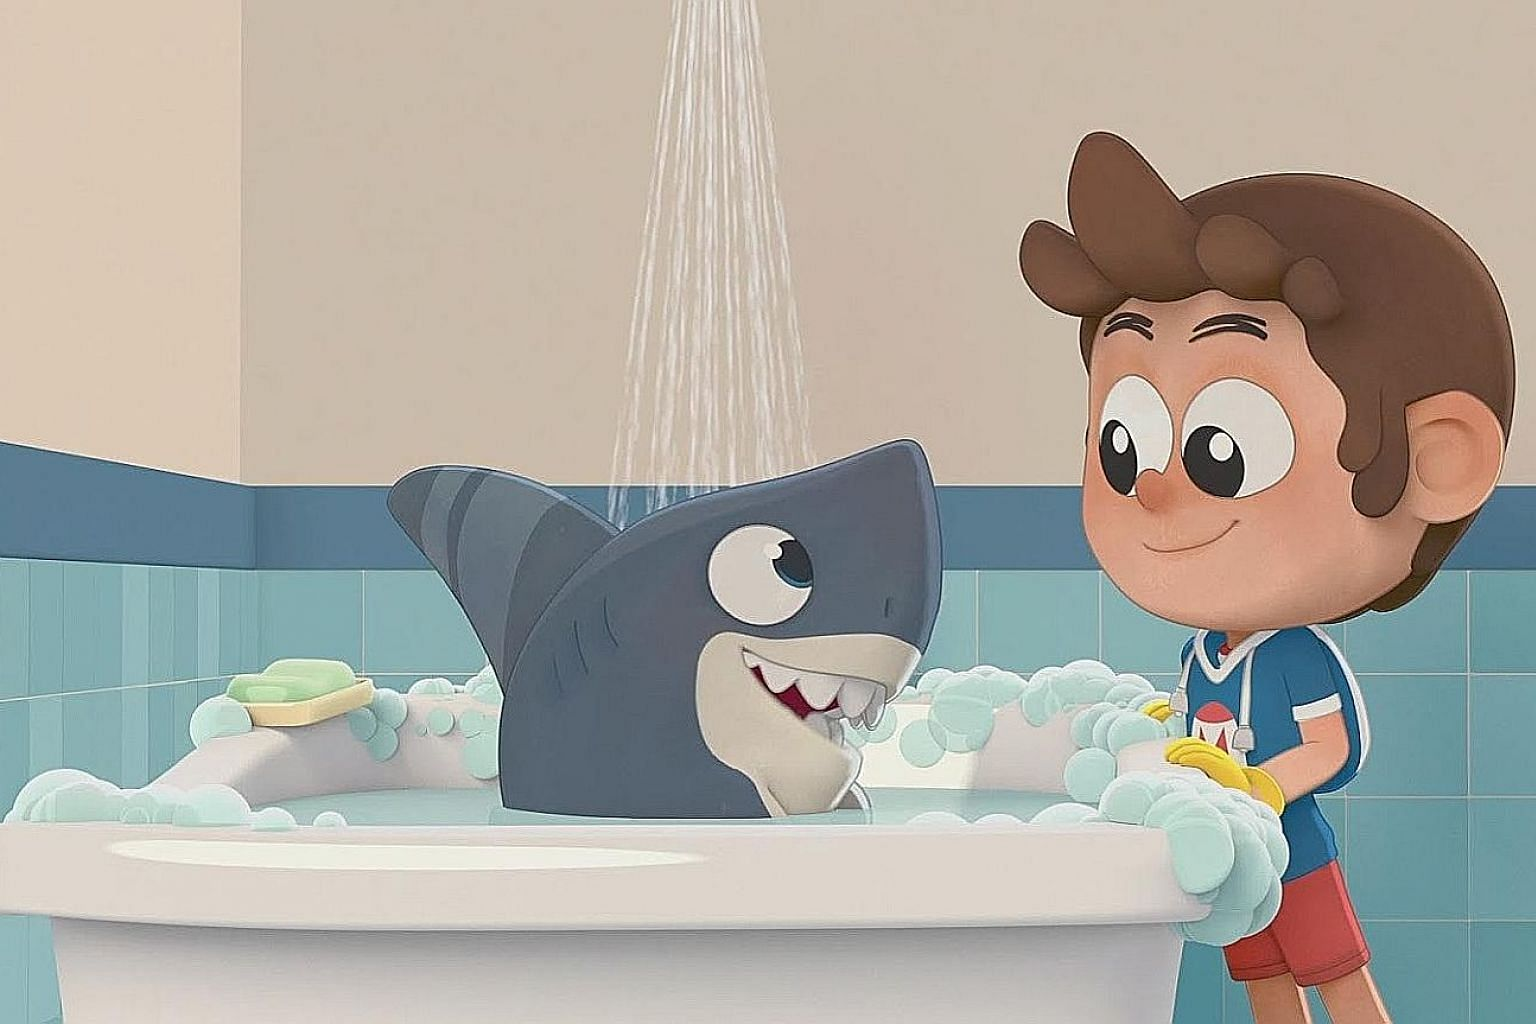 Singaporean storyboard artist Jacinth Tan (above) is the creator of the children's animated series Sharkdog (left), which is set to air next year on Netflix.